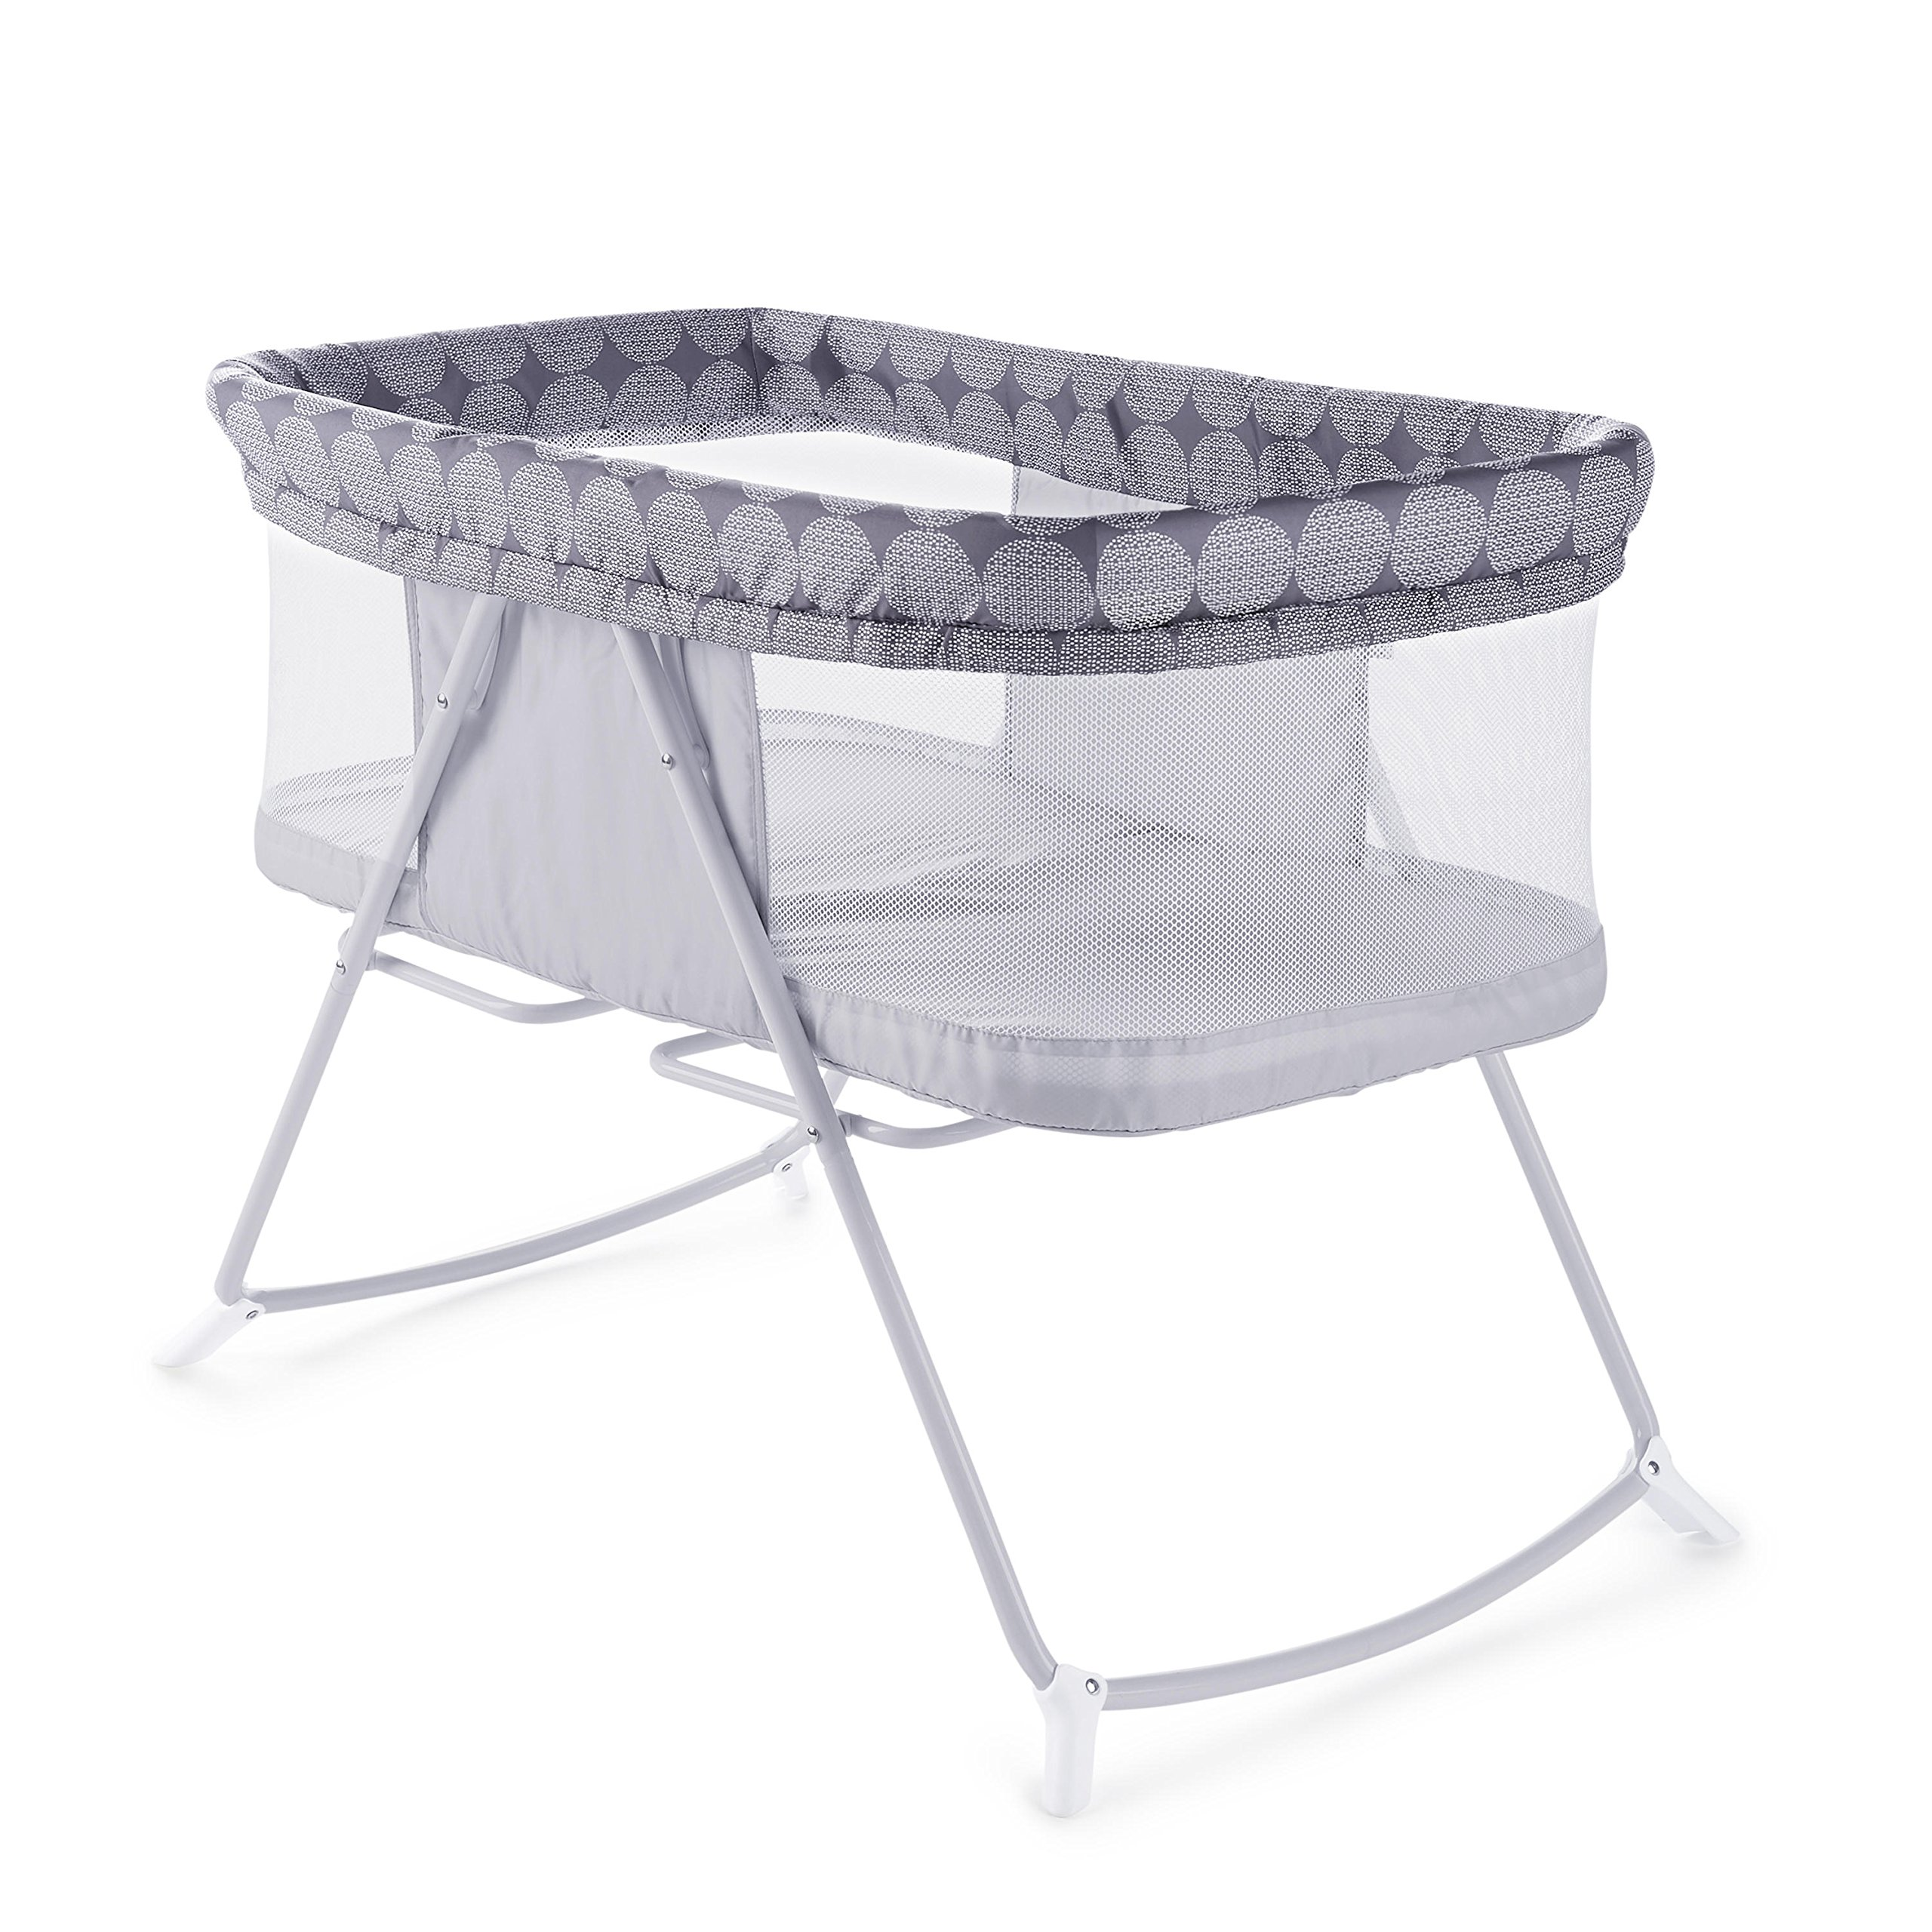 Ingenuity Foldaway Rocking Bassinet Classic - Crosby - Portable Folding Rocking Bassinet